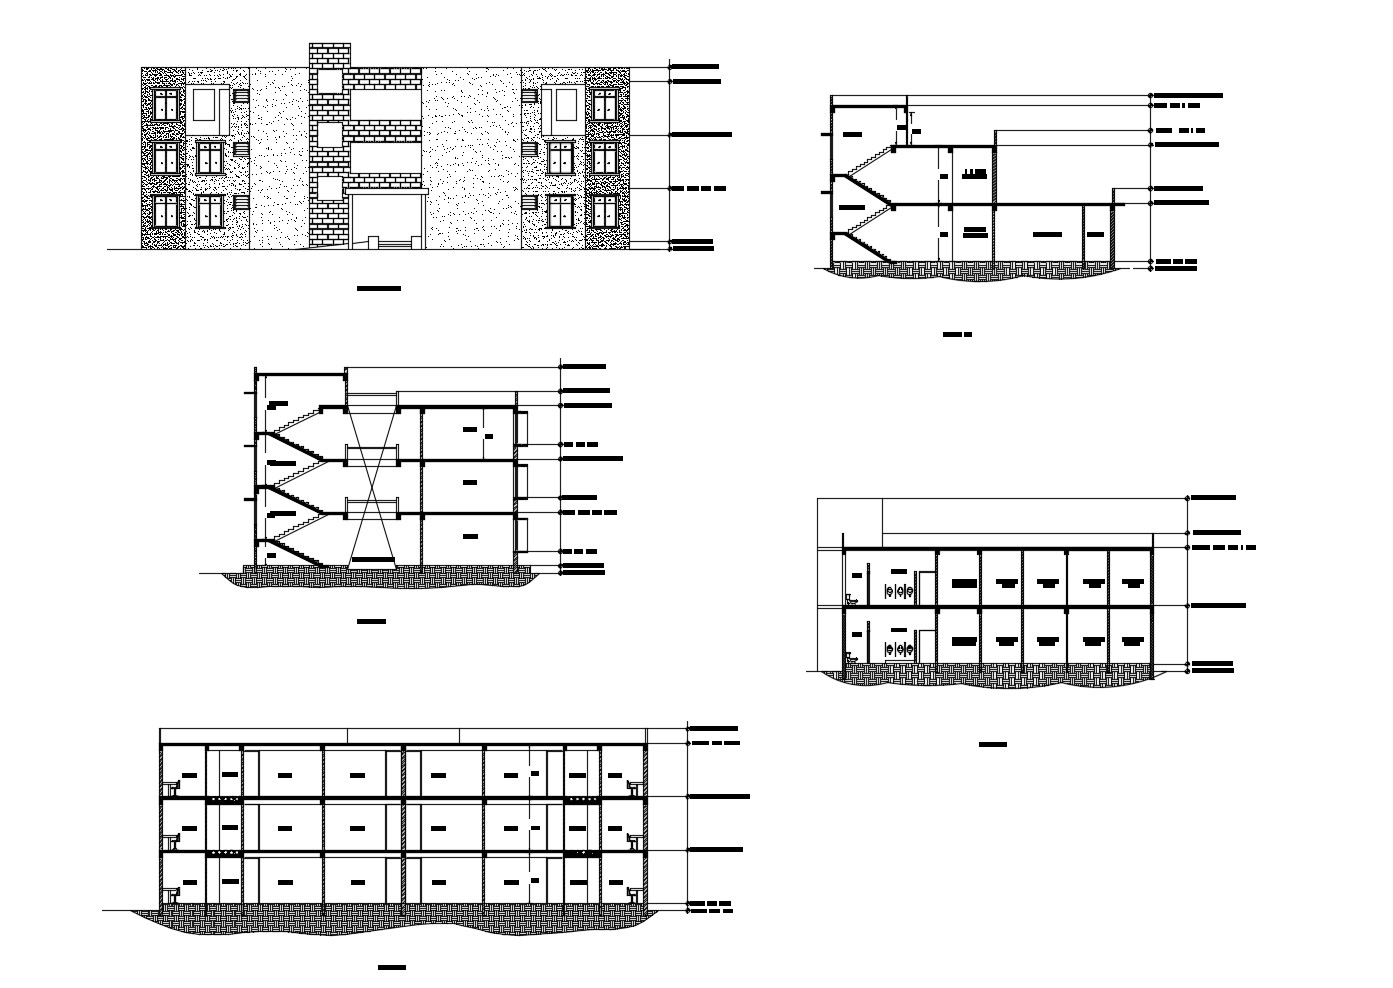 Elevation details of guest house building in dwg file